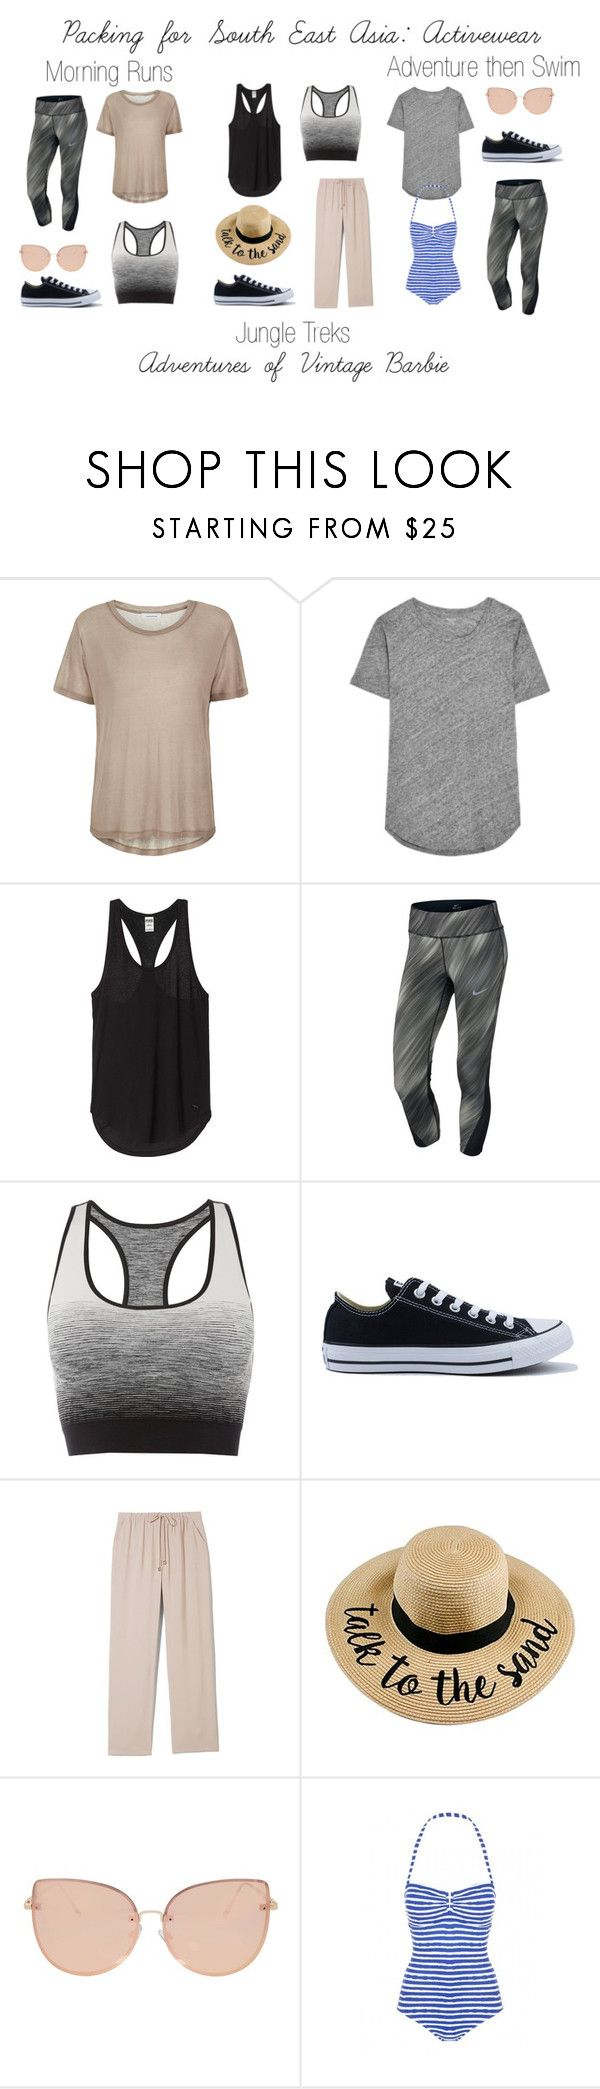 """""""Packing for South East Asia: Activewear"""" by vintagebarbie17 on Polyvore featuring Samsøe & Samsøe, Madewell, NIKE, Pepper & Mayne, Converse, Vince Camuto and Topshop"""